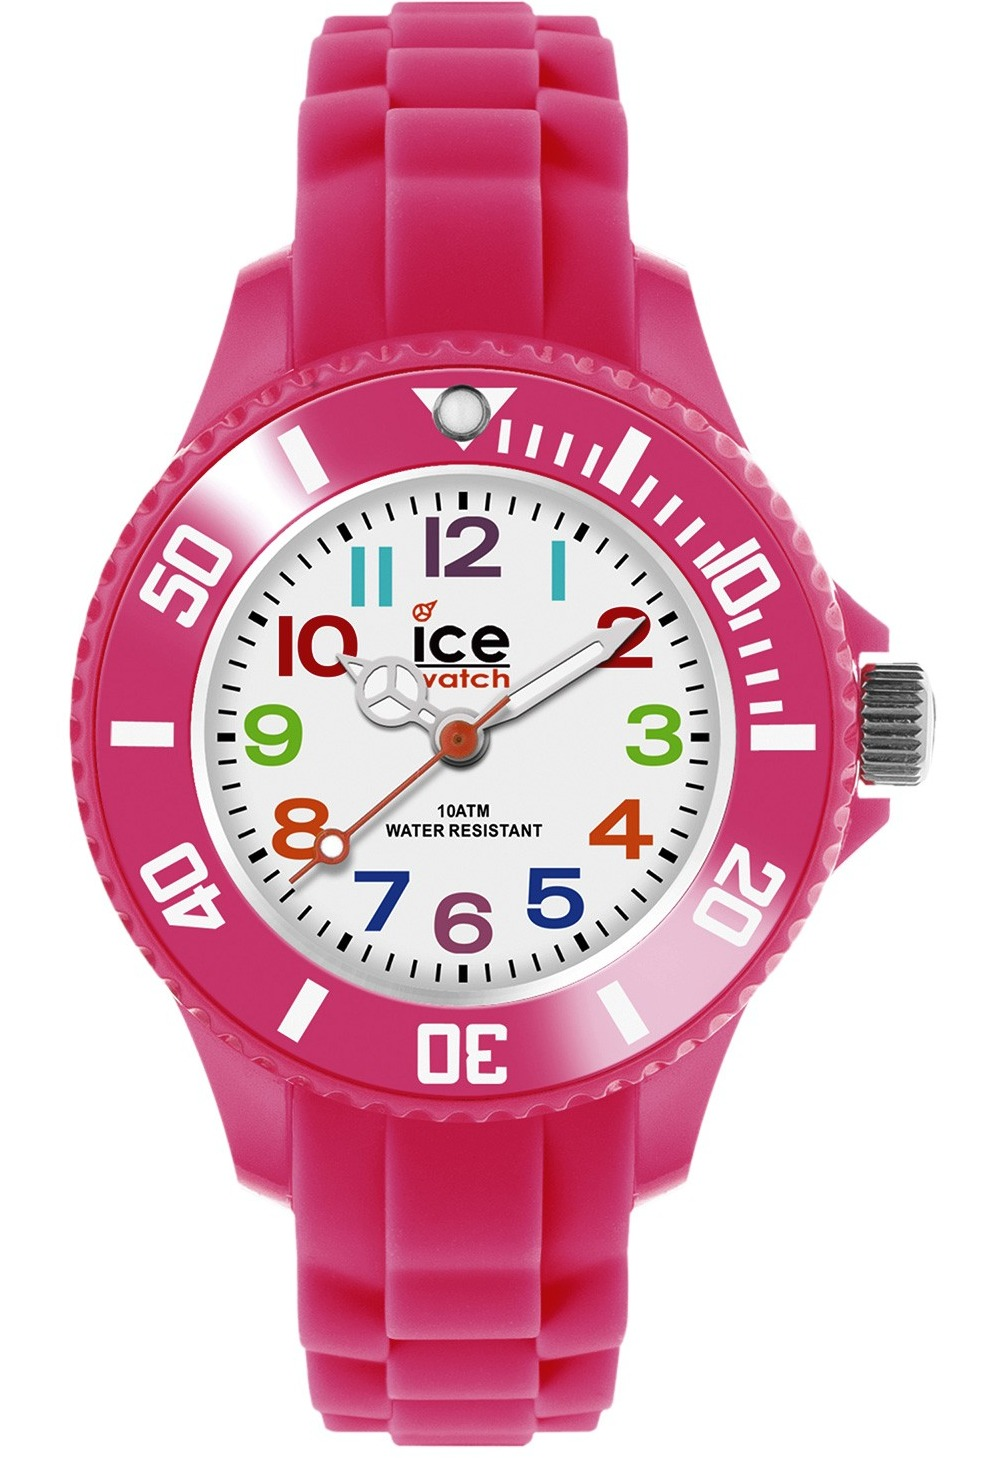 plus récent fb36f efb6e Montre ICE mini - Pink